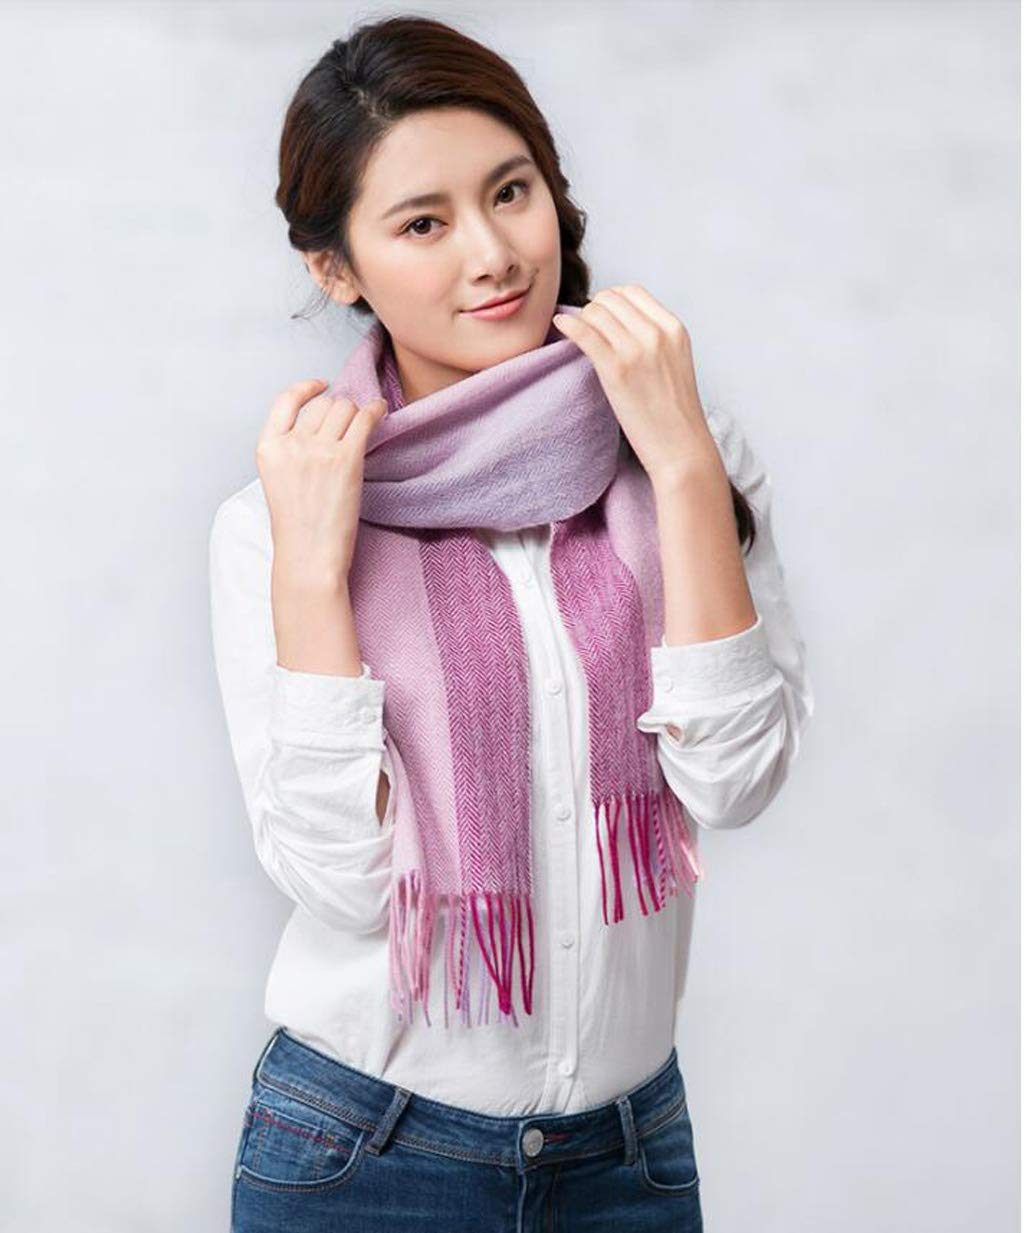 C JUN Wool Scarf Female Winter Warm Thick Versatile Shawl Dual Purpose (color   C)